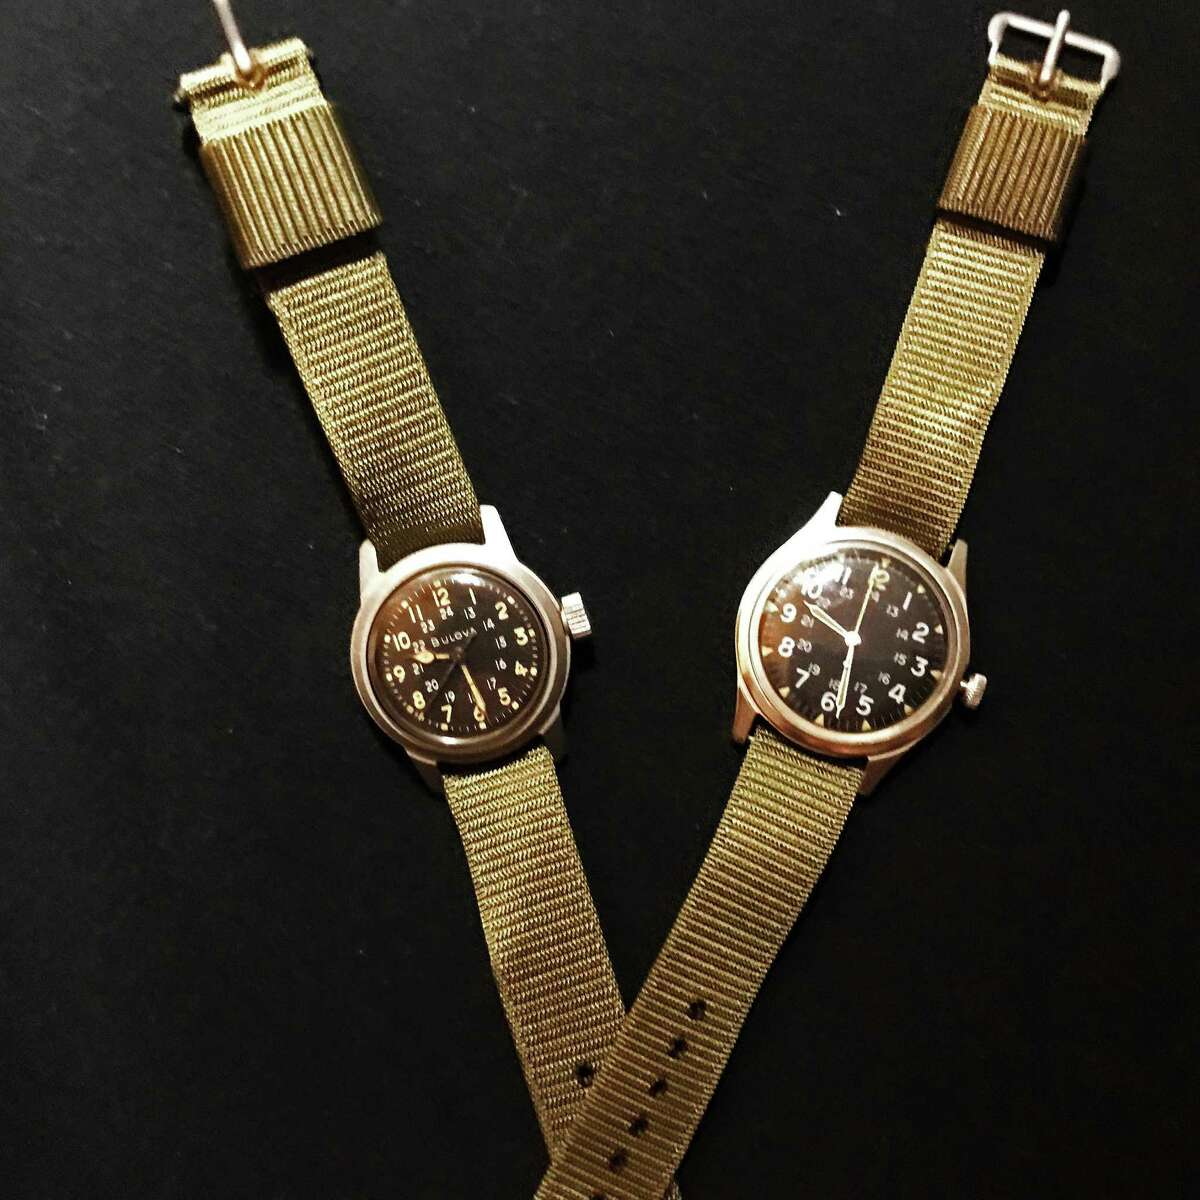 Two watches (a Bulova and a Benrus) columnist Susan Campbell recently received in honor of her father.